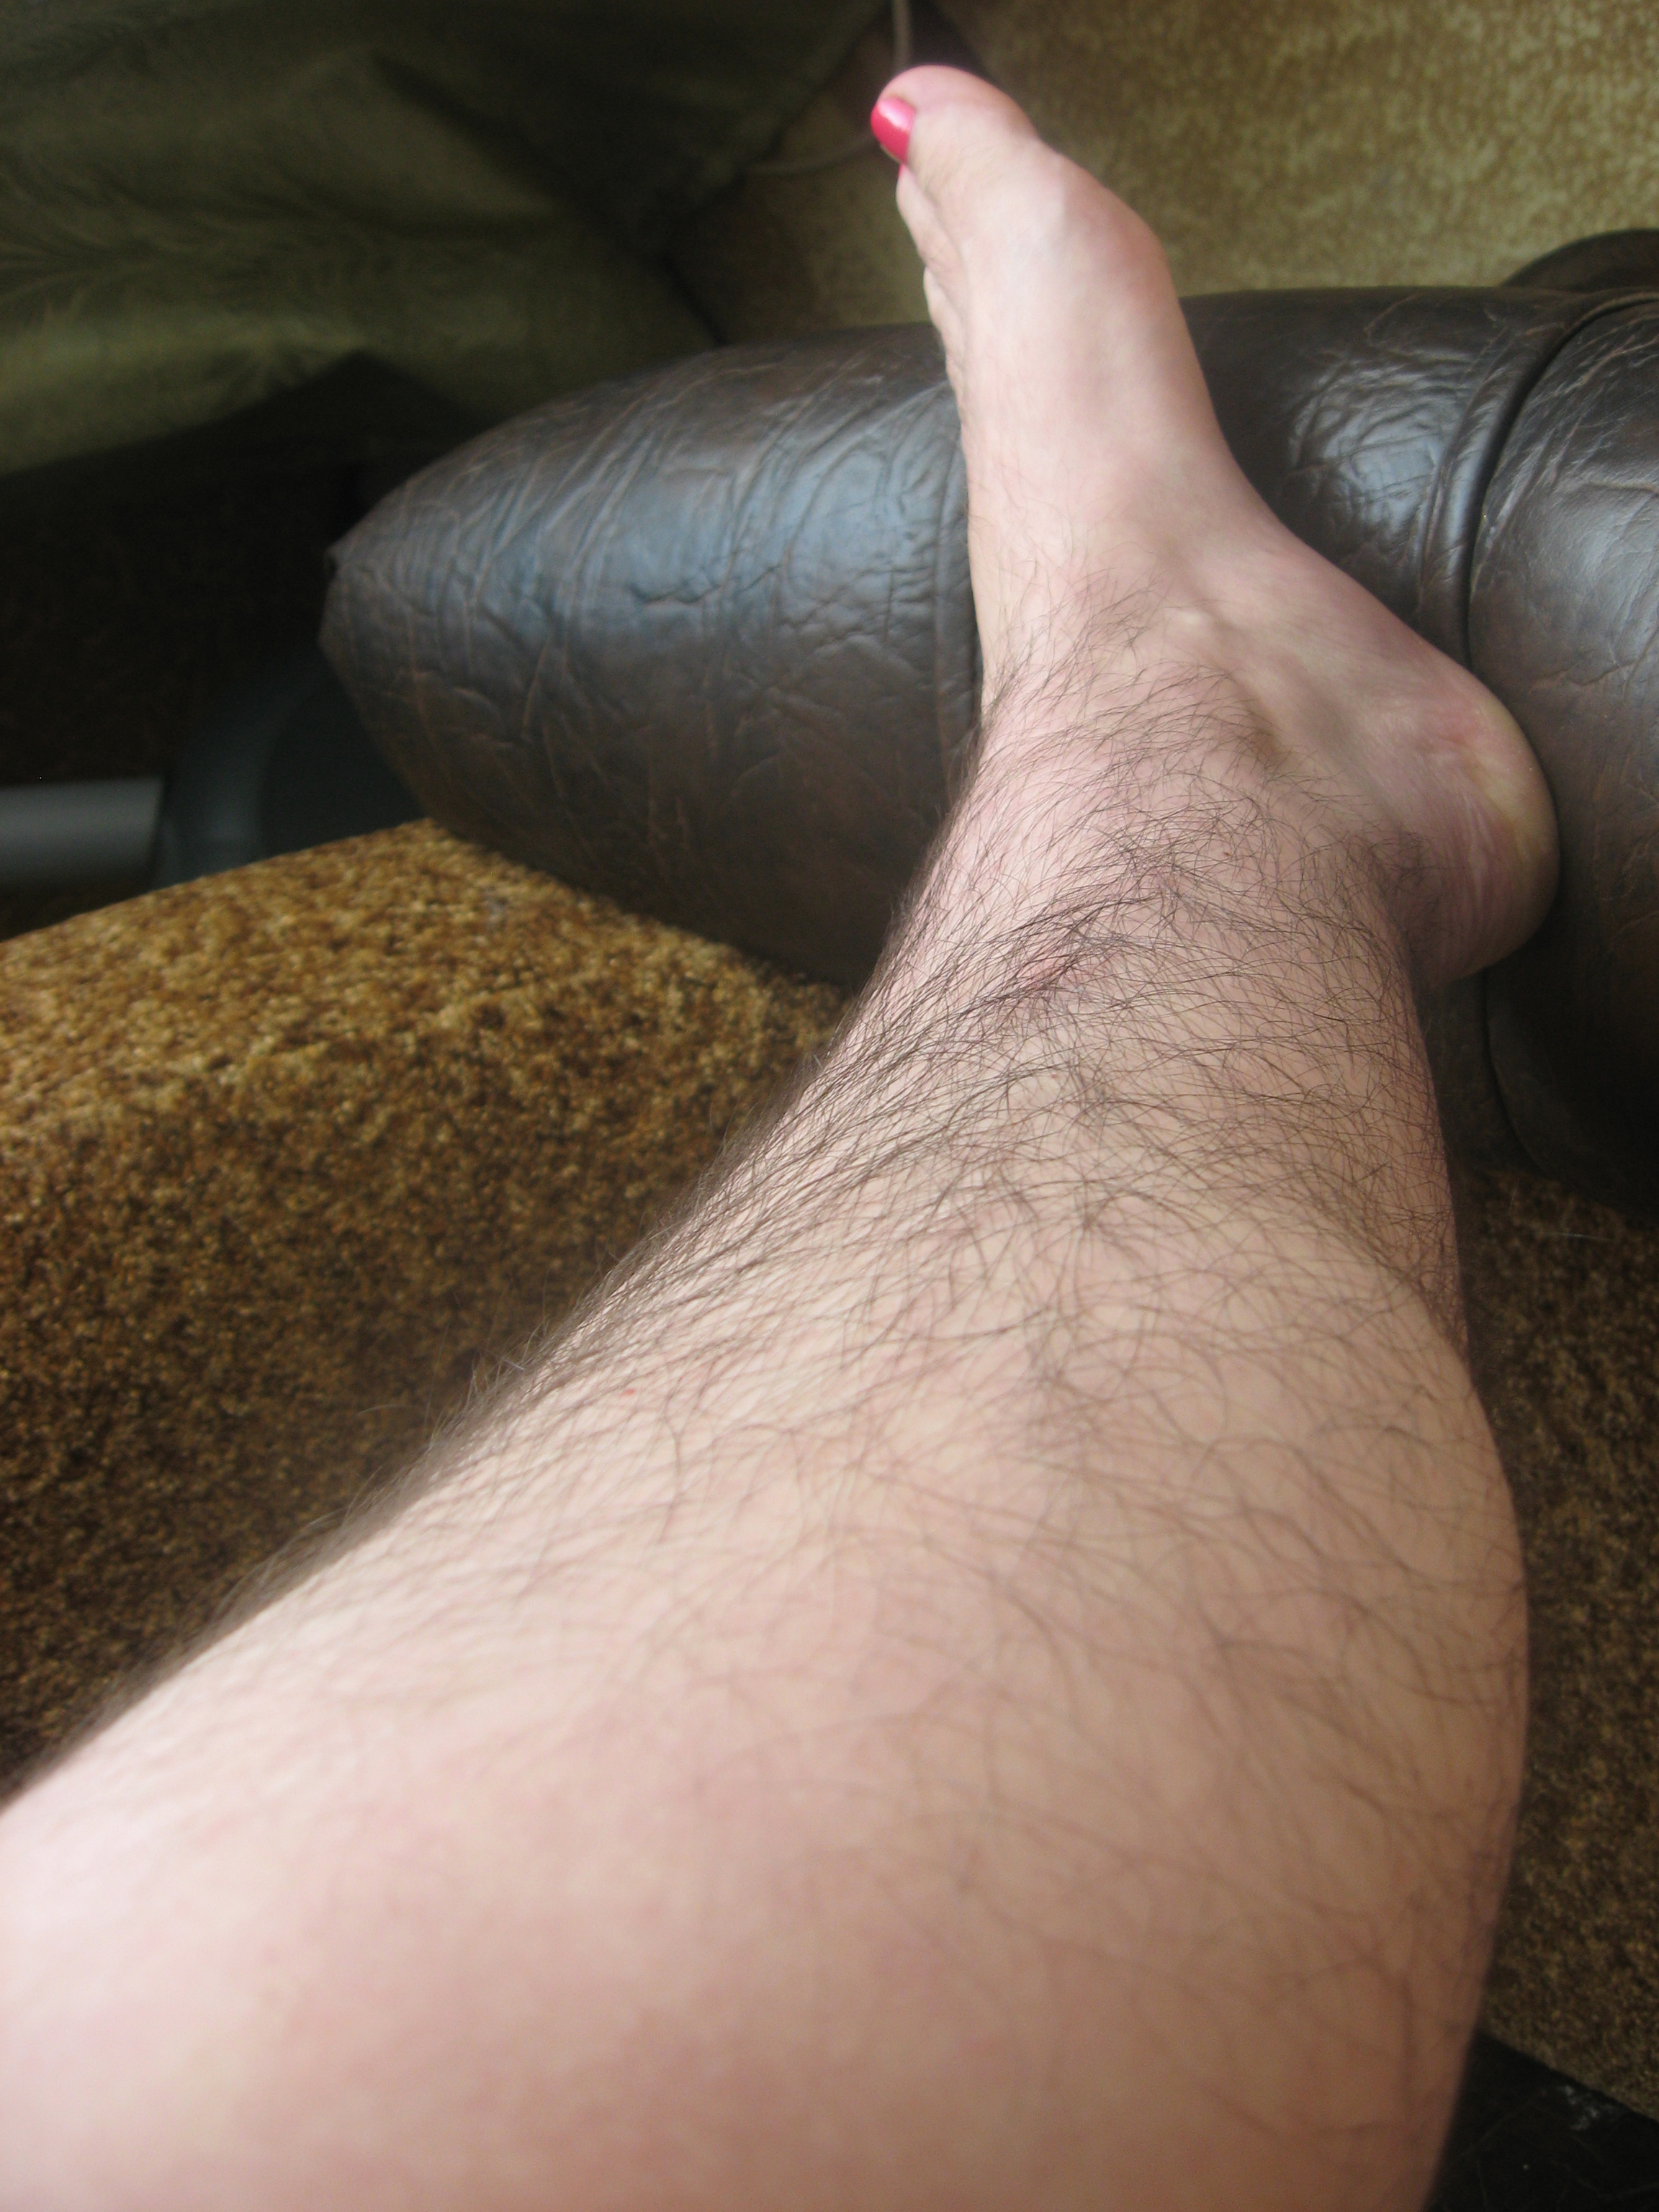 SUPER HAIRY FEMALE LEGS